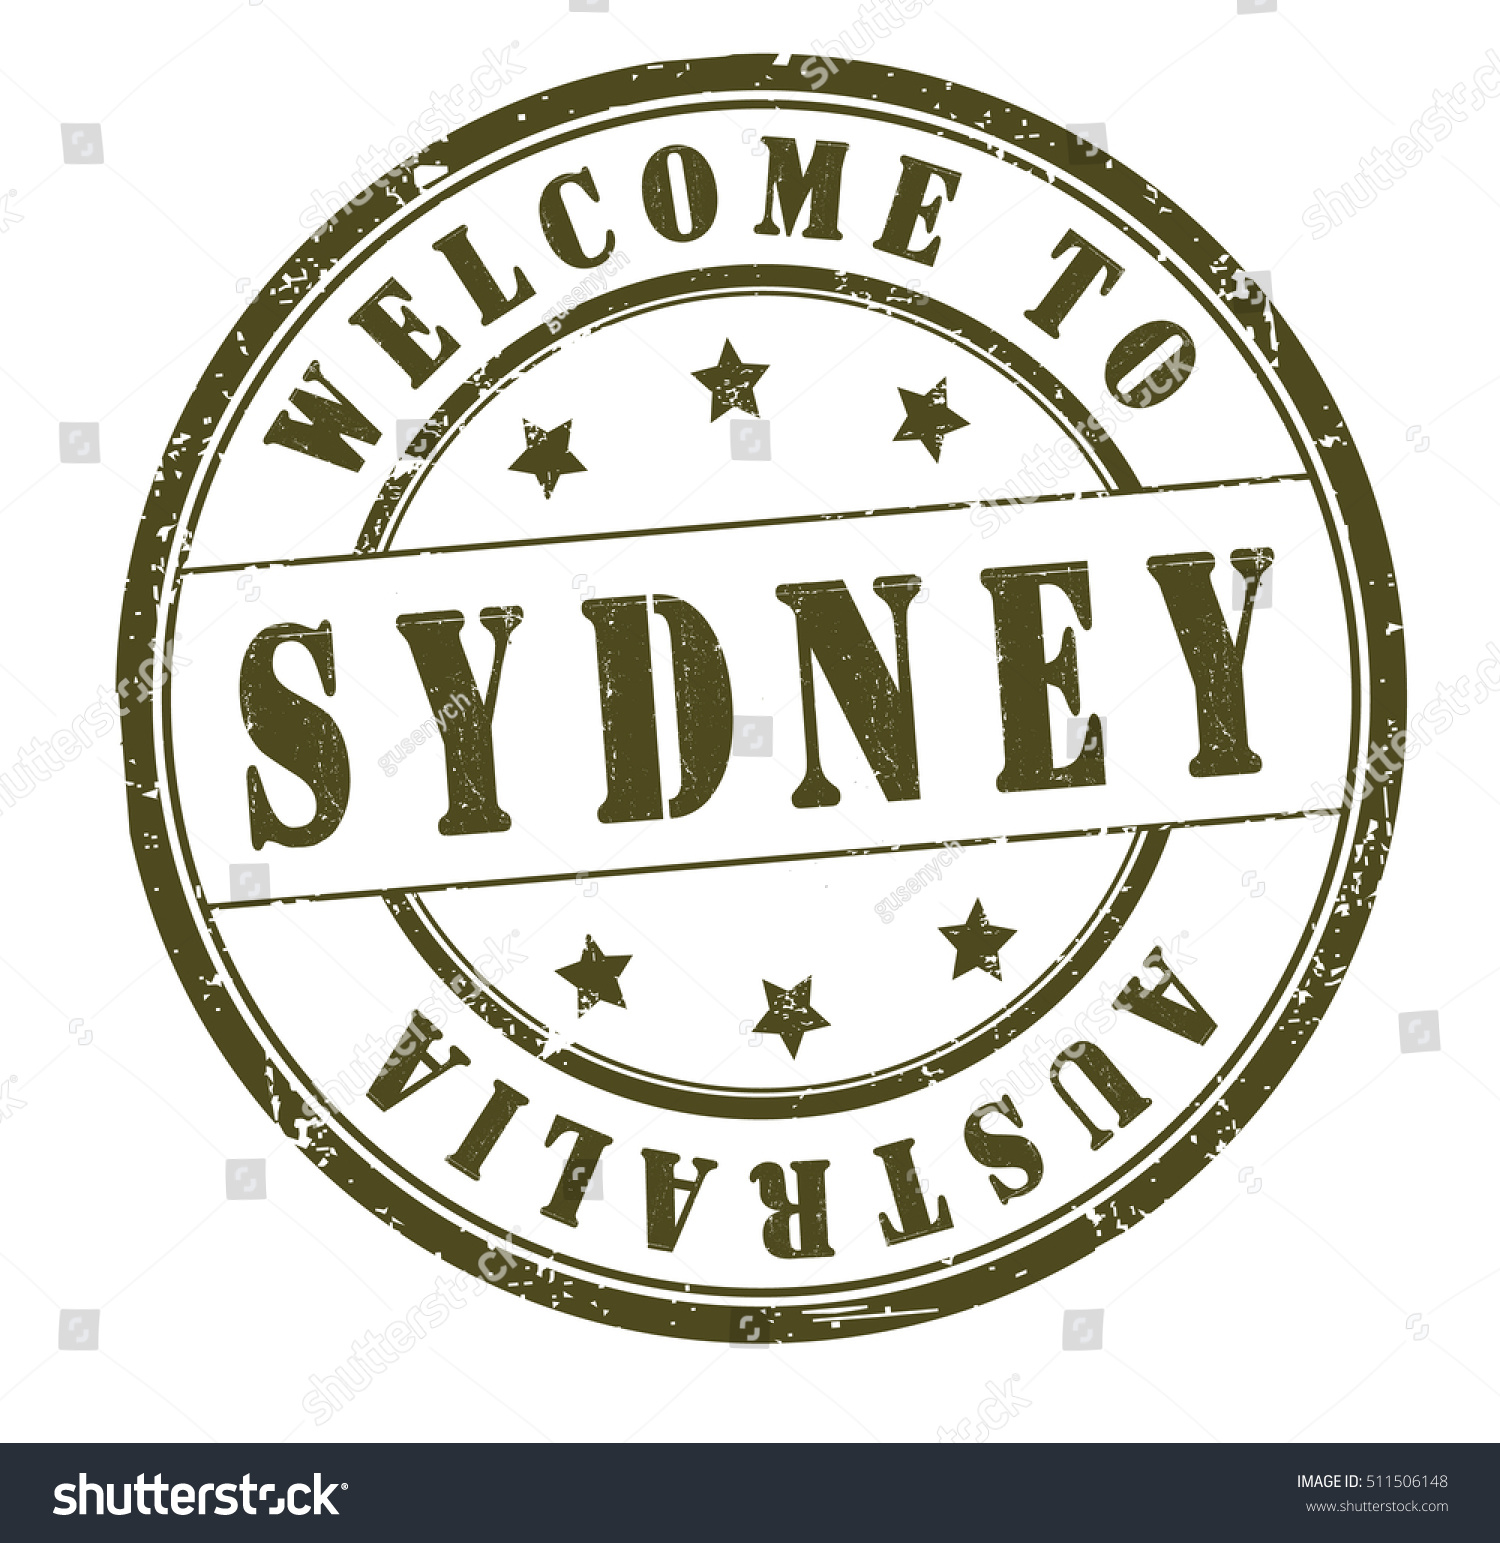 Rubber stamp text welcome sydney australia stock vector 511506148 rubber stamp with text welcome to sydney australia on white vector illustration buycottarizona Gallery